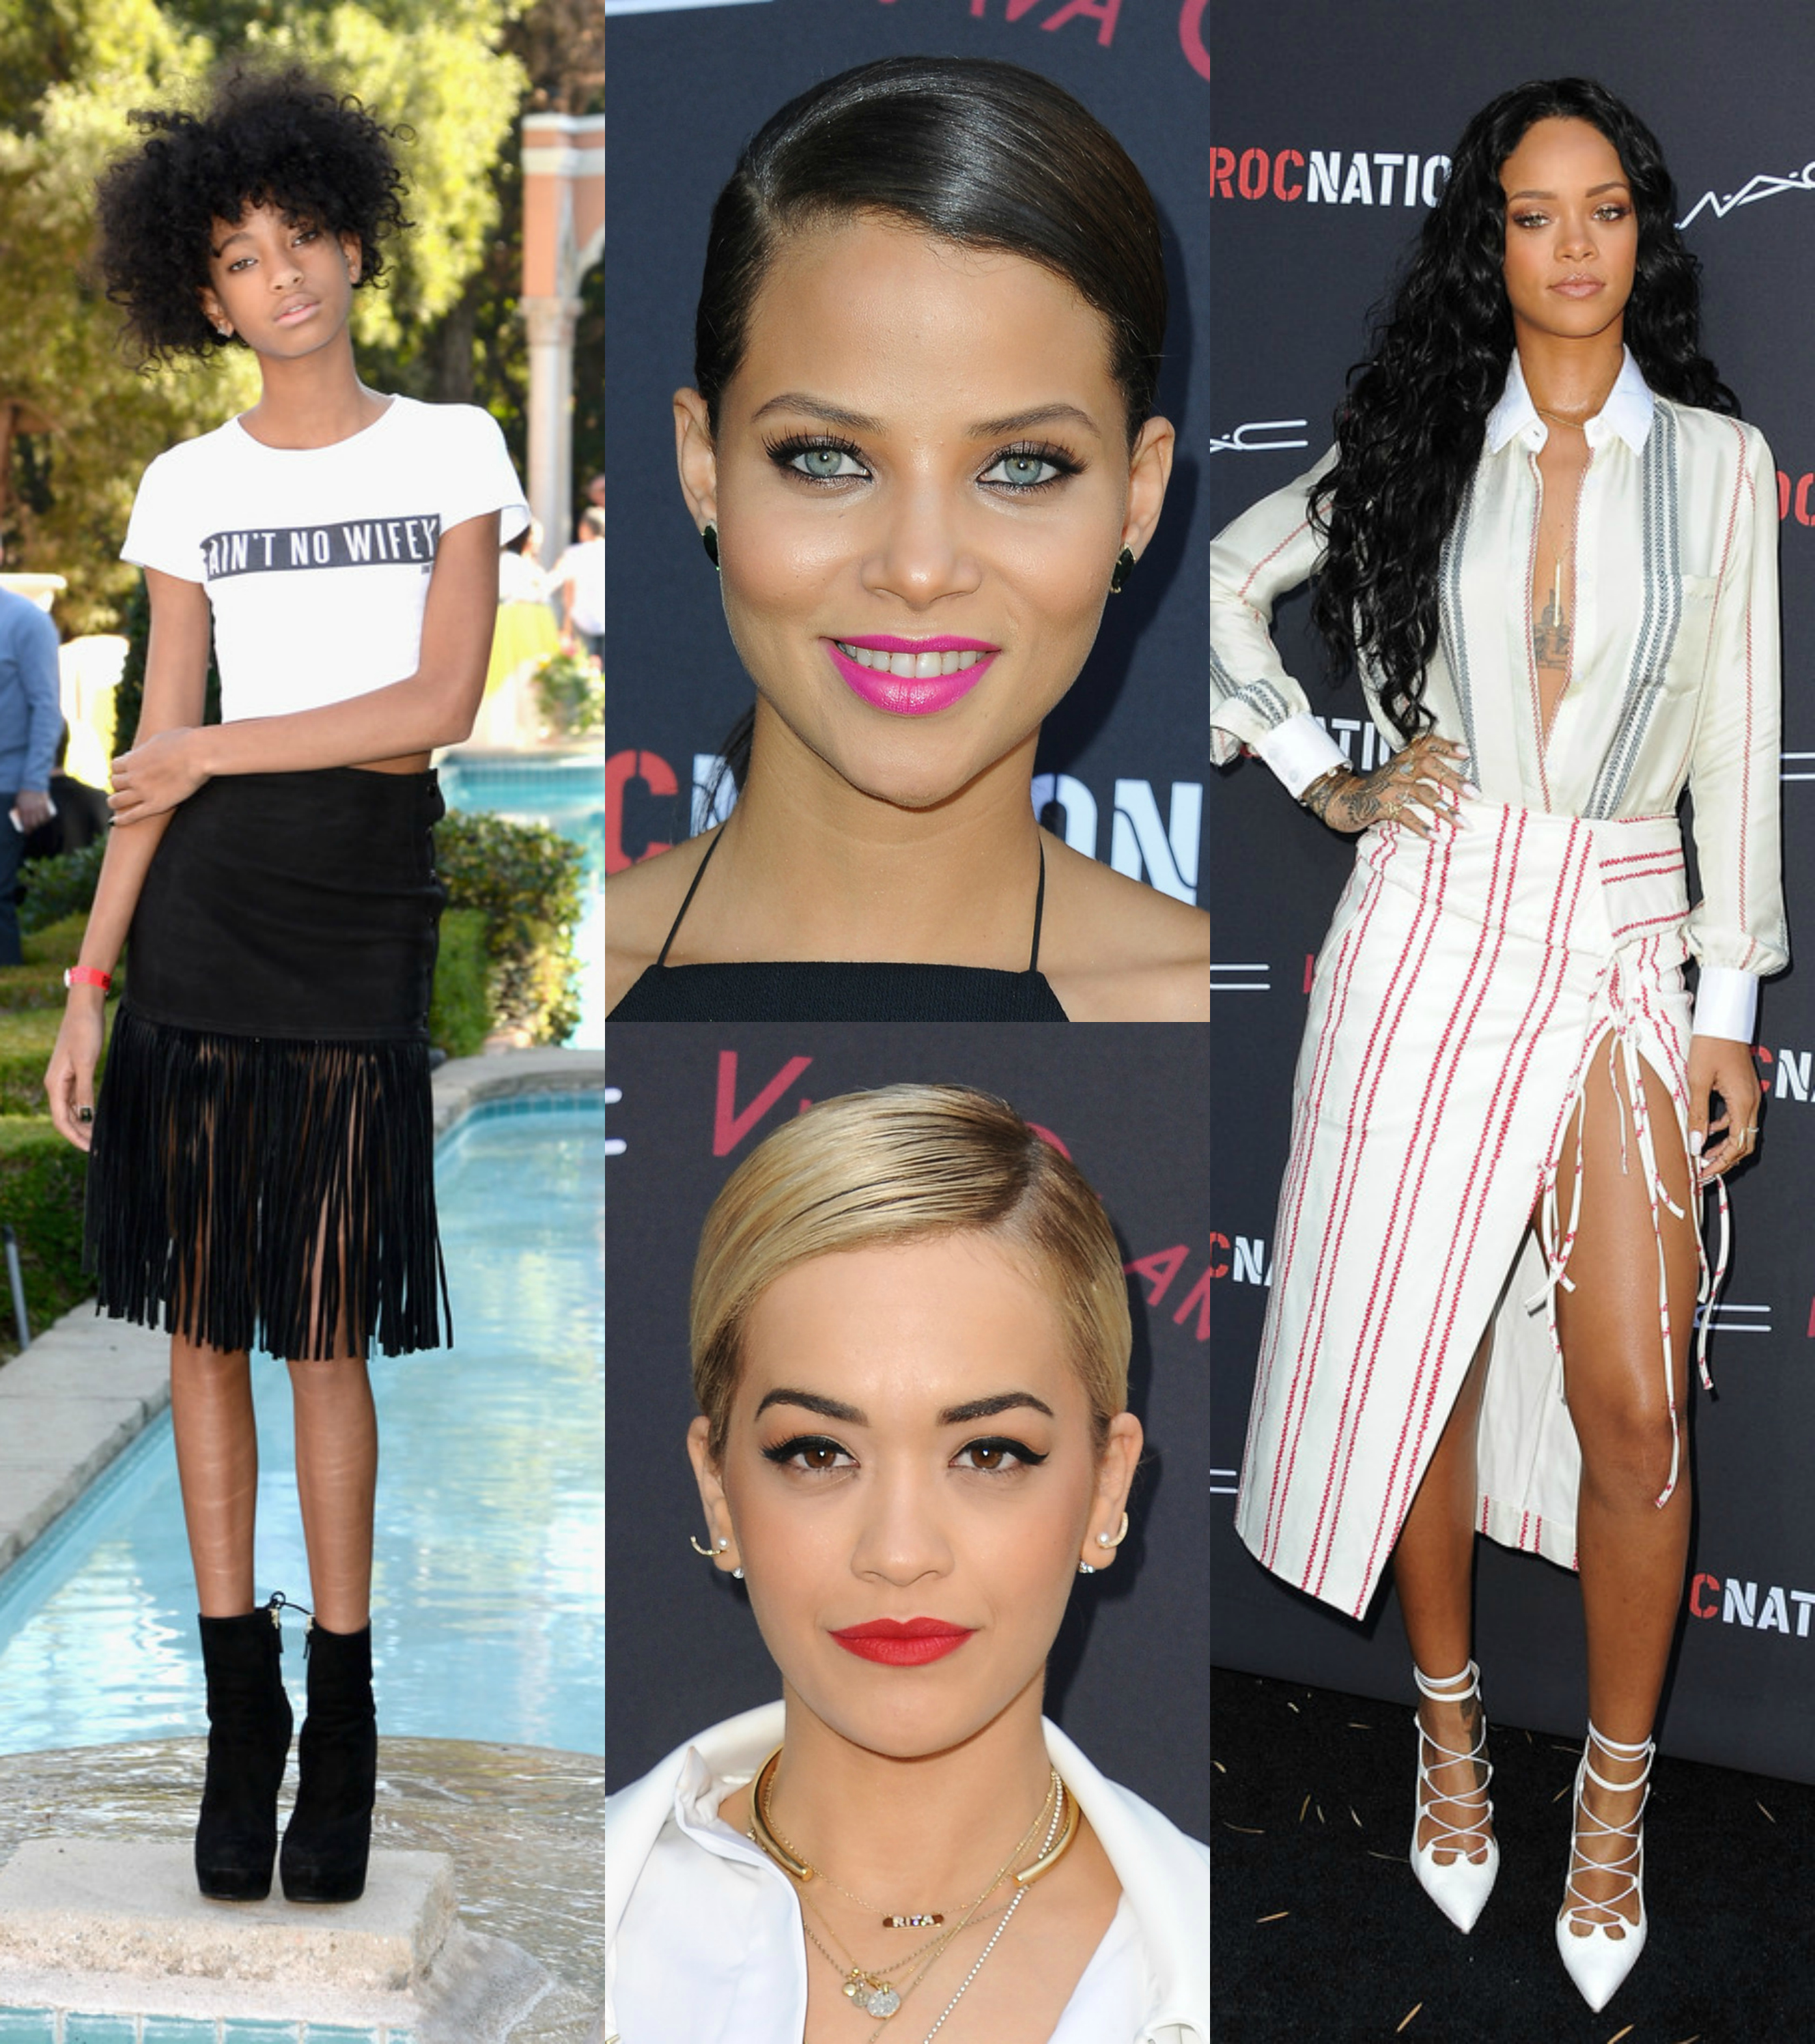 rita ora, rihanna, willow smith, denise vasi at the roc nation pre-grammy brunch 2014